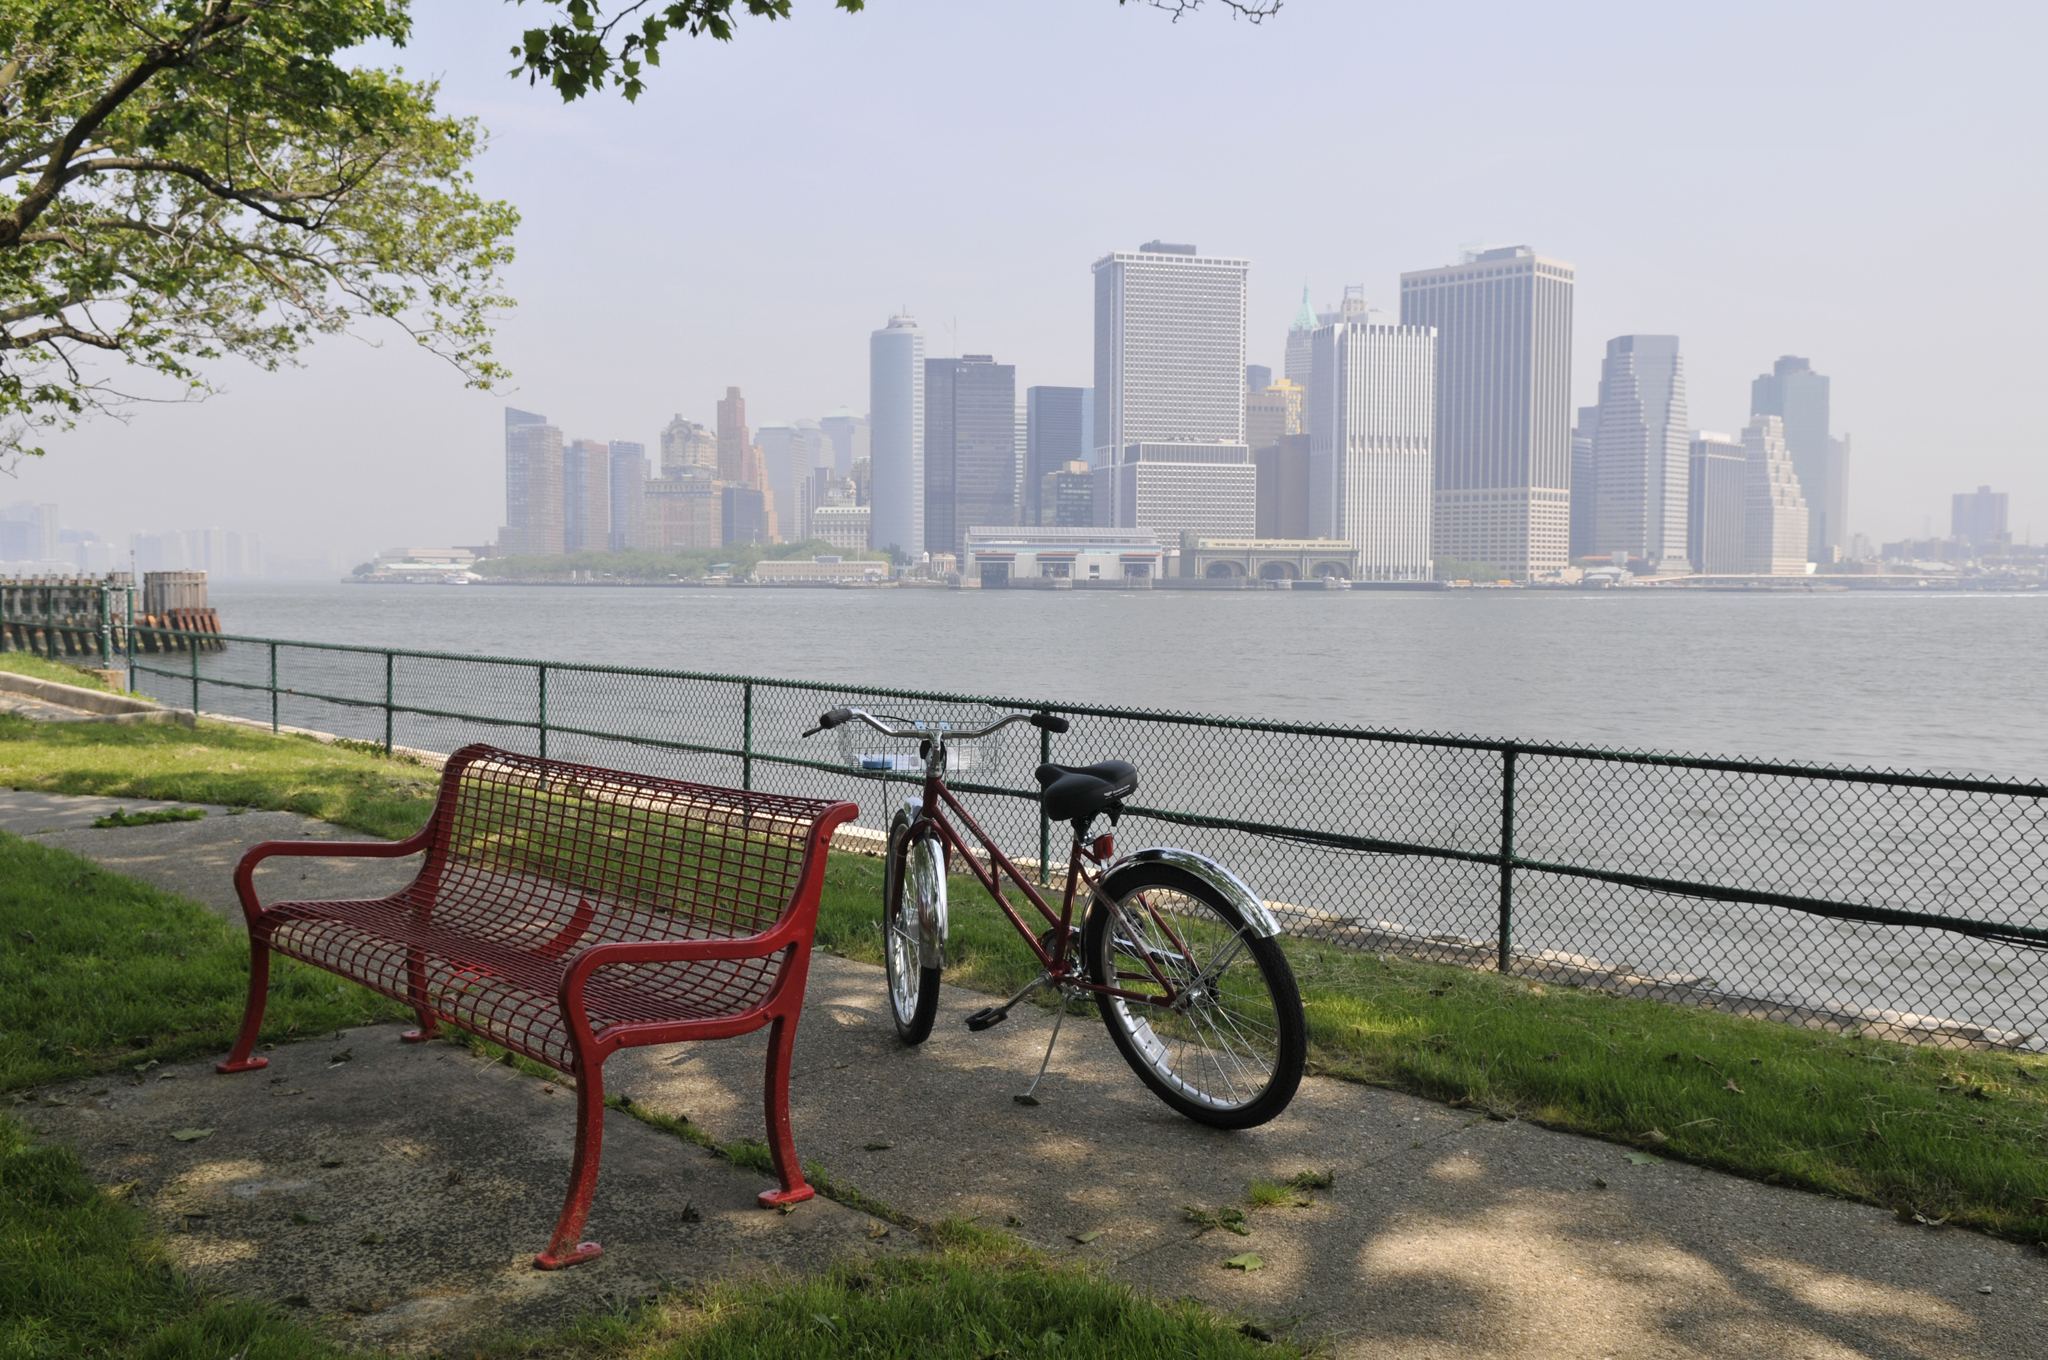 Take the ferry to Governors Island